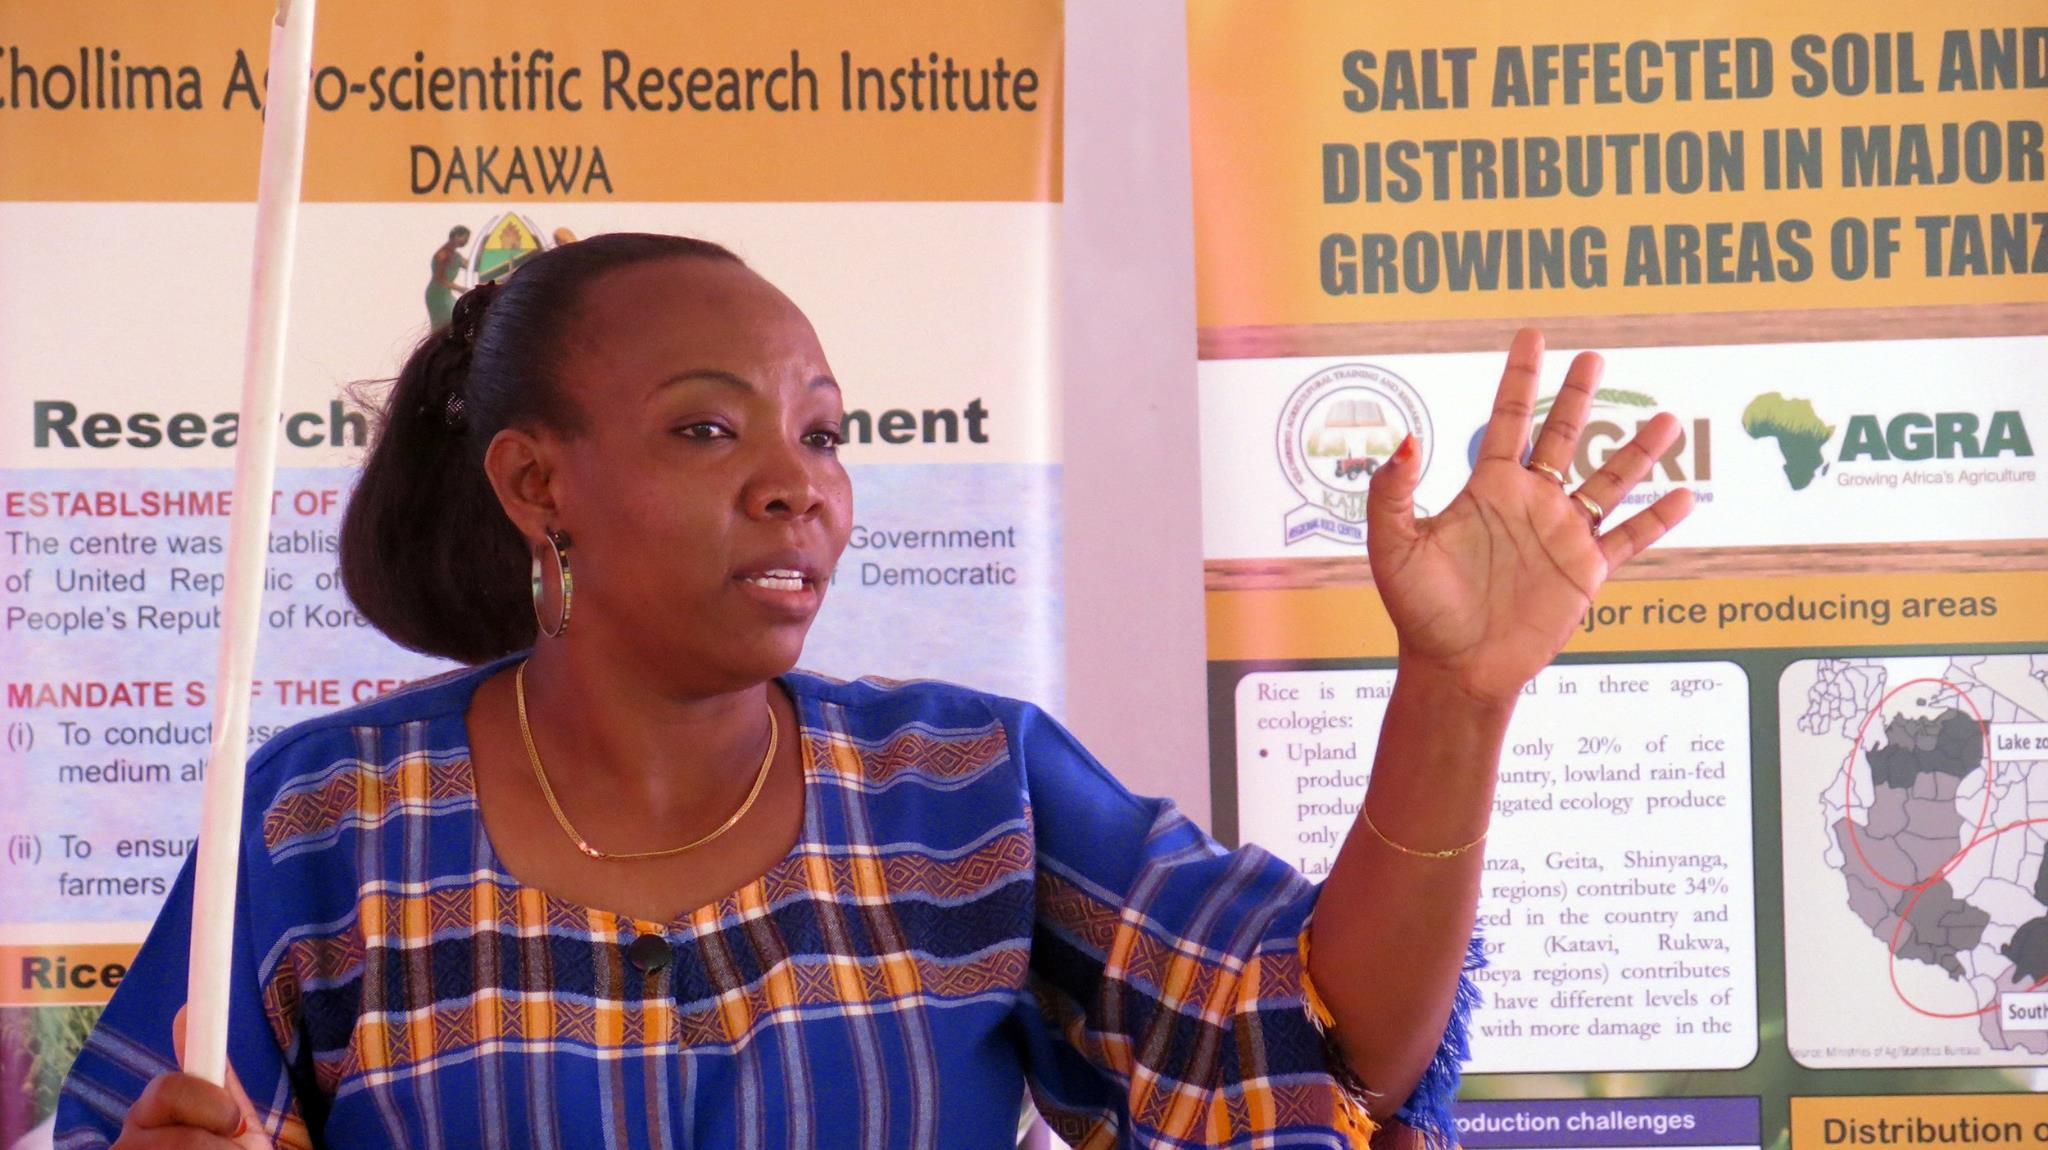 Research Presentation on Salt Affected Soil in Dakawa